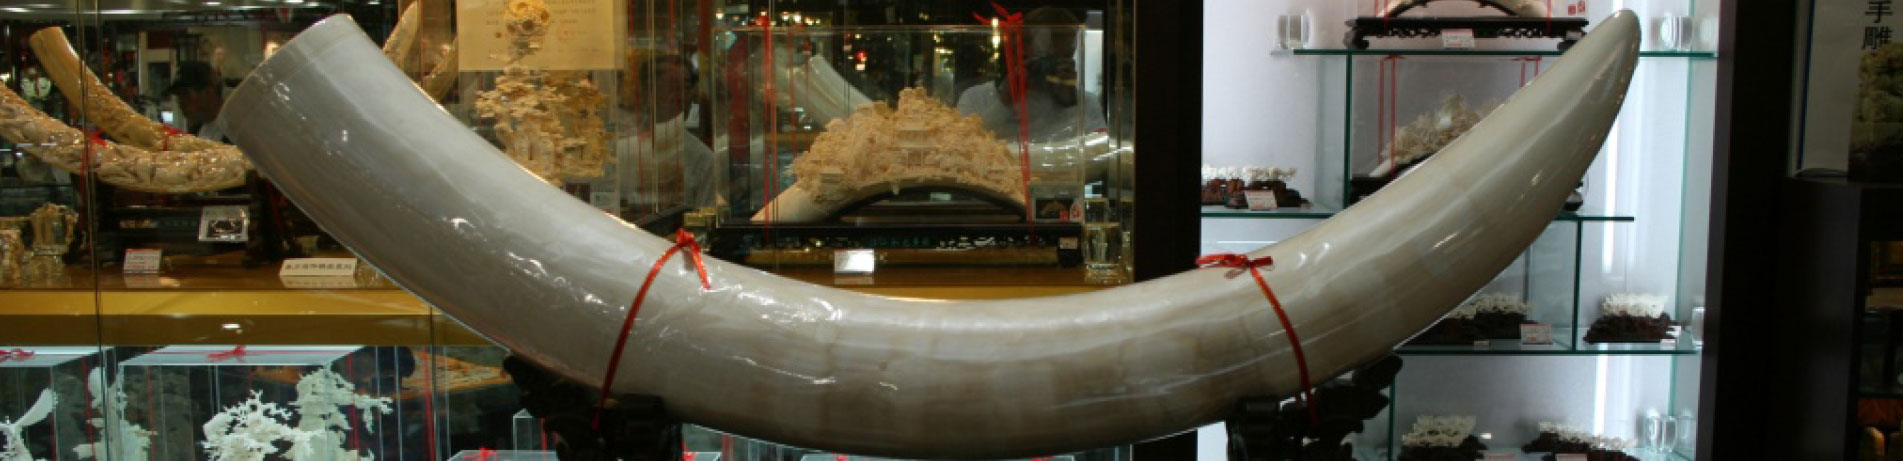 Elephant ivory displayed for sale in China